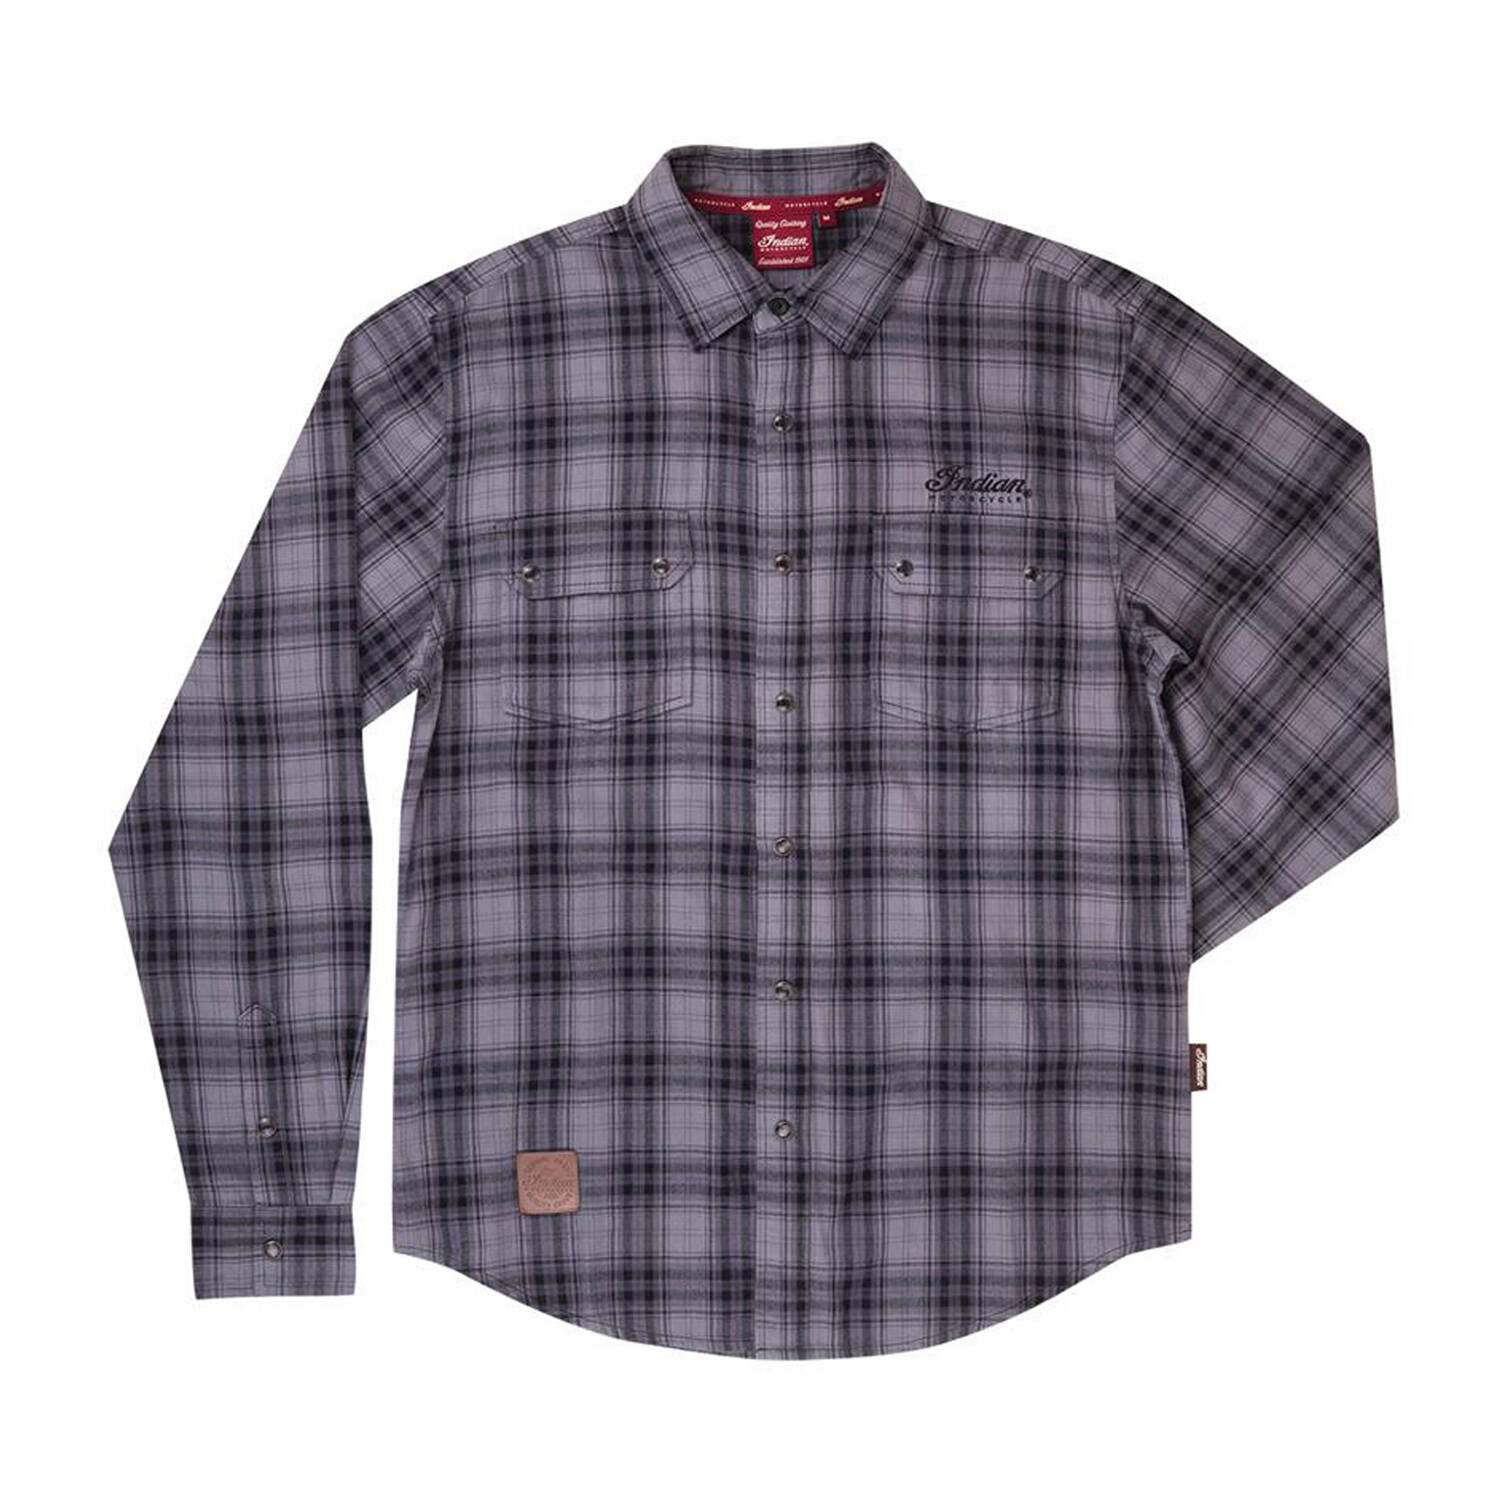 Men's Plaid Shirt, Gray/Black